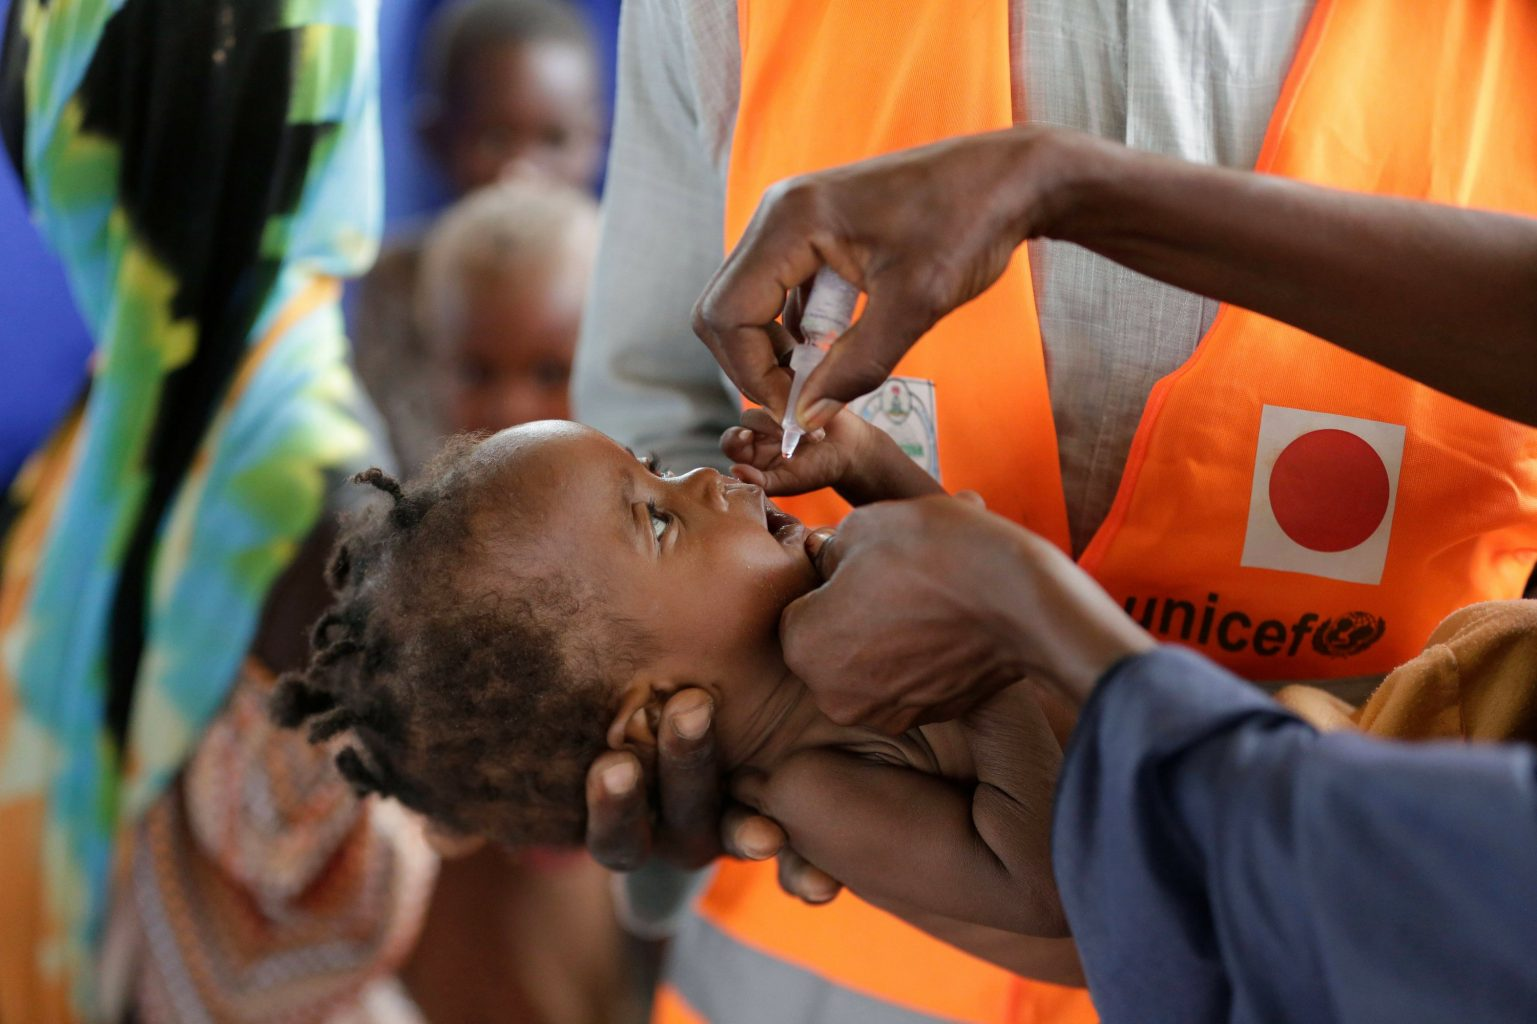 Nigeria achieves historic 3 years of polio-free status